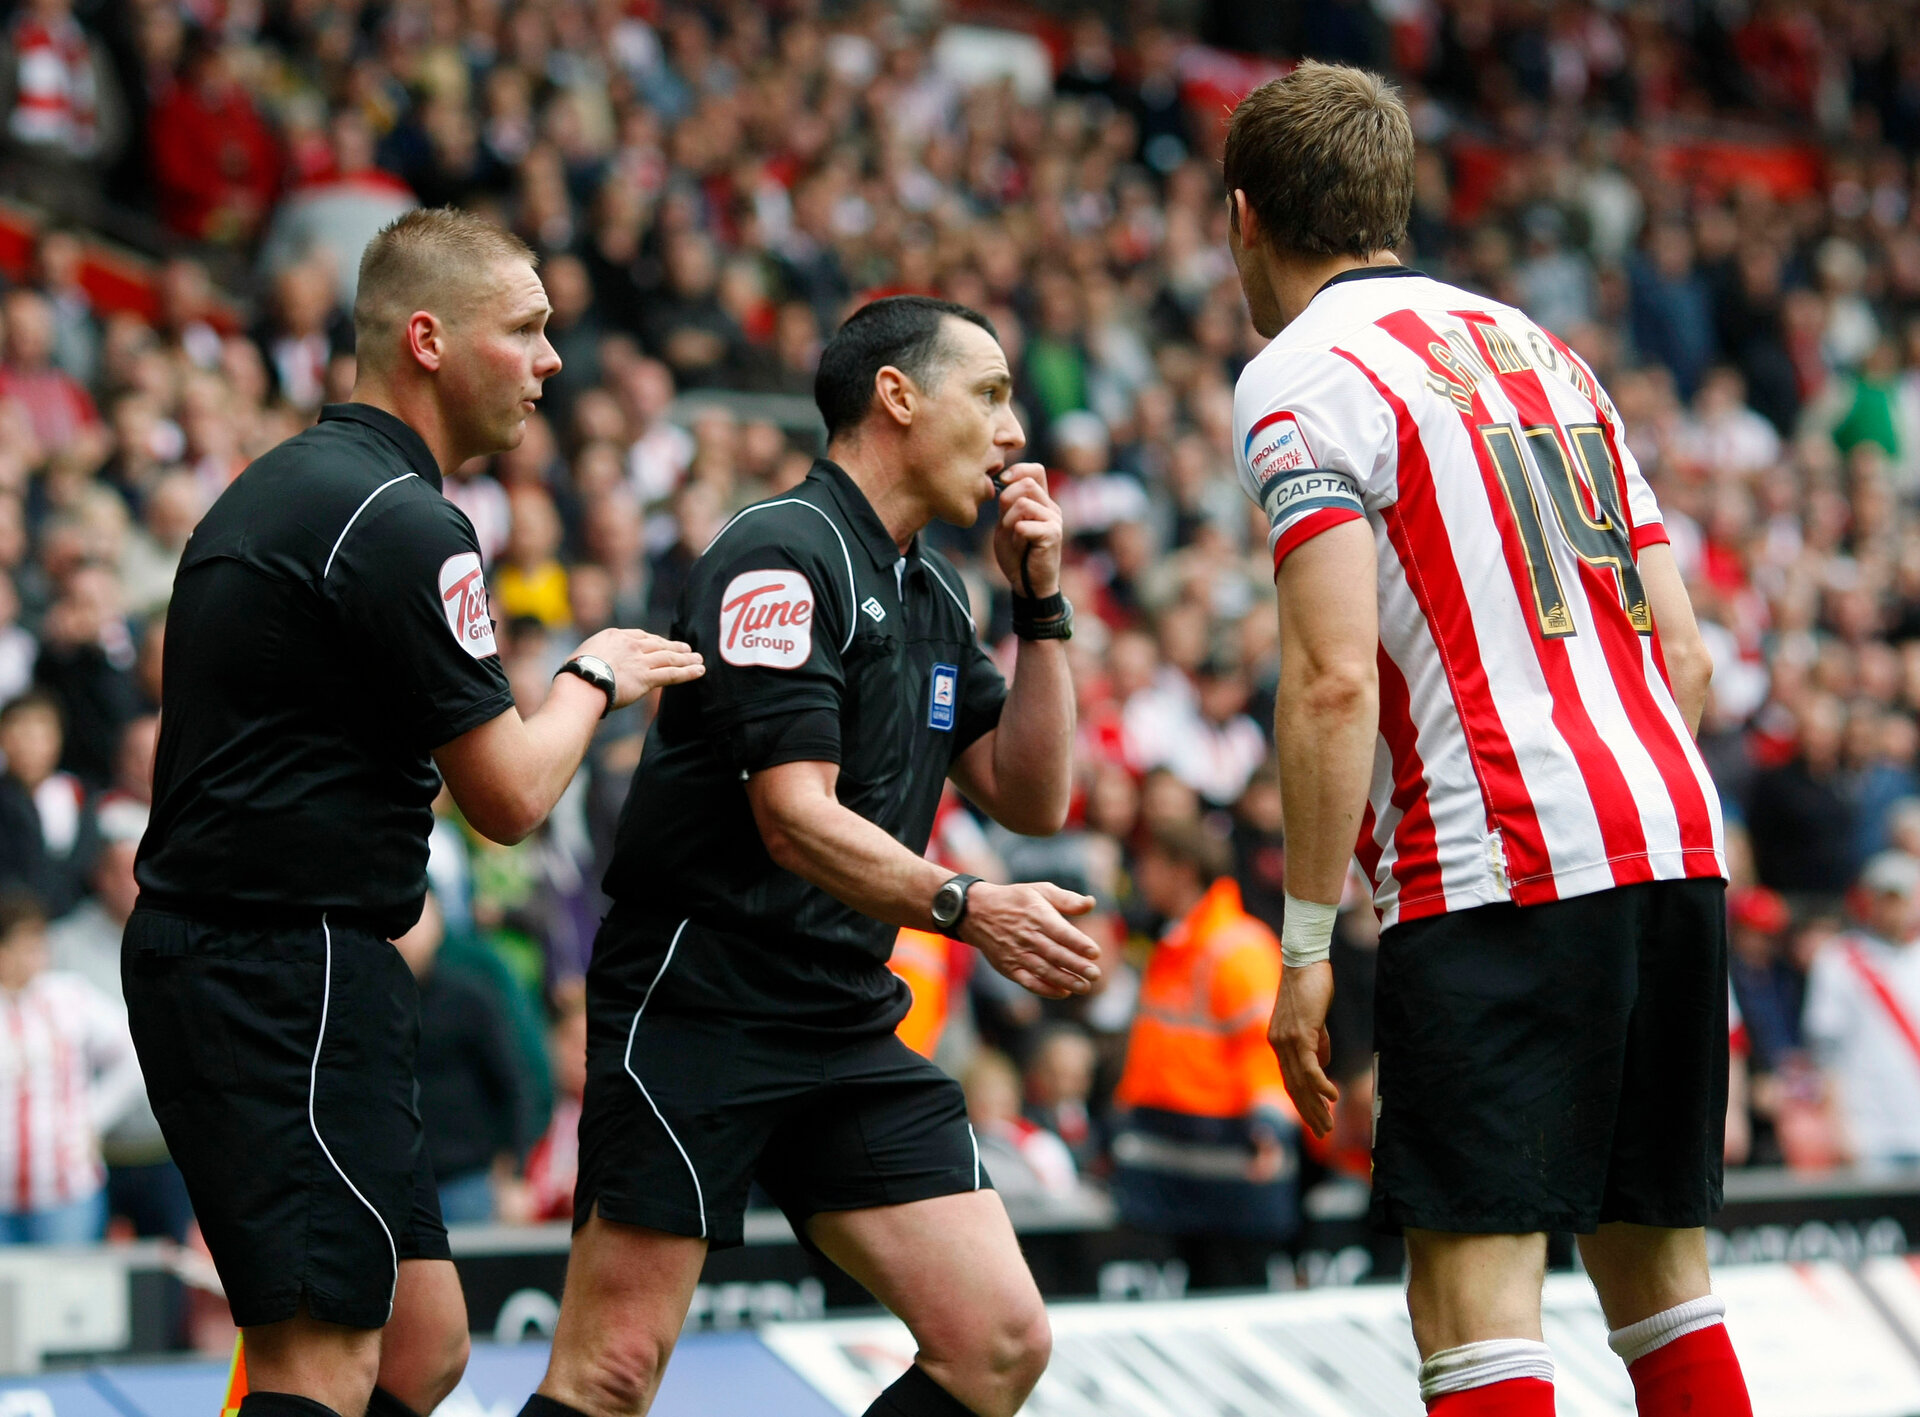 """Football - Southampton v Portsmouth npower Football League Championship  - St Mary's Stadium  - 7/4/12  Referee Neil Swarbrick (C) talks with assistant referee John Flynn before awarding the second Southampton goal scored by Billy Sharp (Not Pictured) as Southampton's Dean Hammond (R) looks on  Mandatory Credit: Action Images / James Benwell  Livepic  EDITORIAL USE ONLY. No use with unauthorized audio, video, data, fixture lists, club/league logos or live services. Online in-match use limited to 45 images, no video emulation. No use in betting, games or single club/league/player publications.  Please contact your account representative for further details. Football - Southampton v Portsmouth npower Football League Championship  - St Mary's Stadium  - 7/4/12 Referee Neil Swarbrick (C) talks with assistant referee John Flynn before awarding the second Southampton goal scored by Billy Sharp (Not Pictured) as Southampton's Dean Hammond (R) looks on Mandatory Credit: Action Images / James Benwell Livepic EDITORIAL USE ONLY. No use with unauthorized audio, video, data, fixture lists, club/league logos or """"live"""" services. Online in-match use limited to 45 images, no video emulation. No use in betting, games or single club/league/player publications.  Please contact your account representative for further details."""